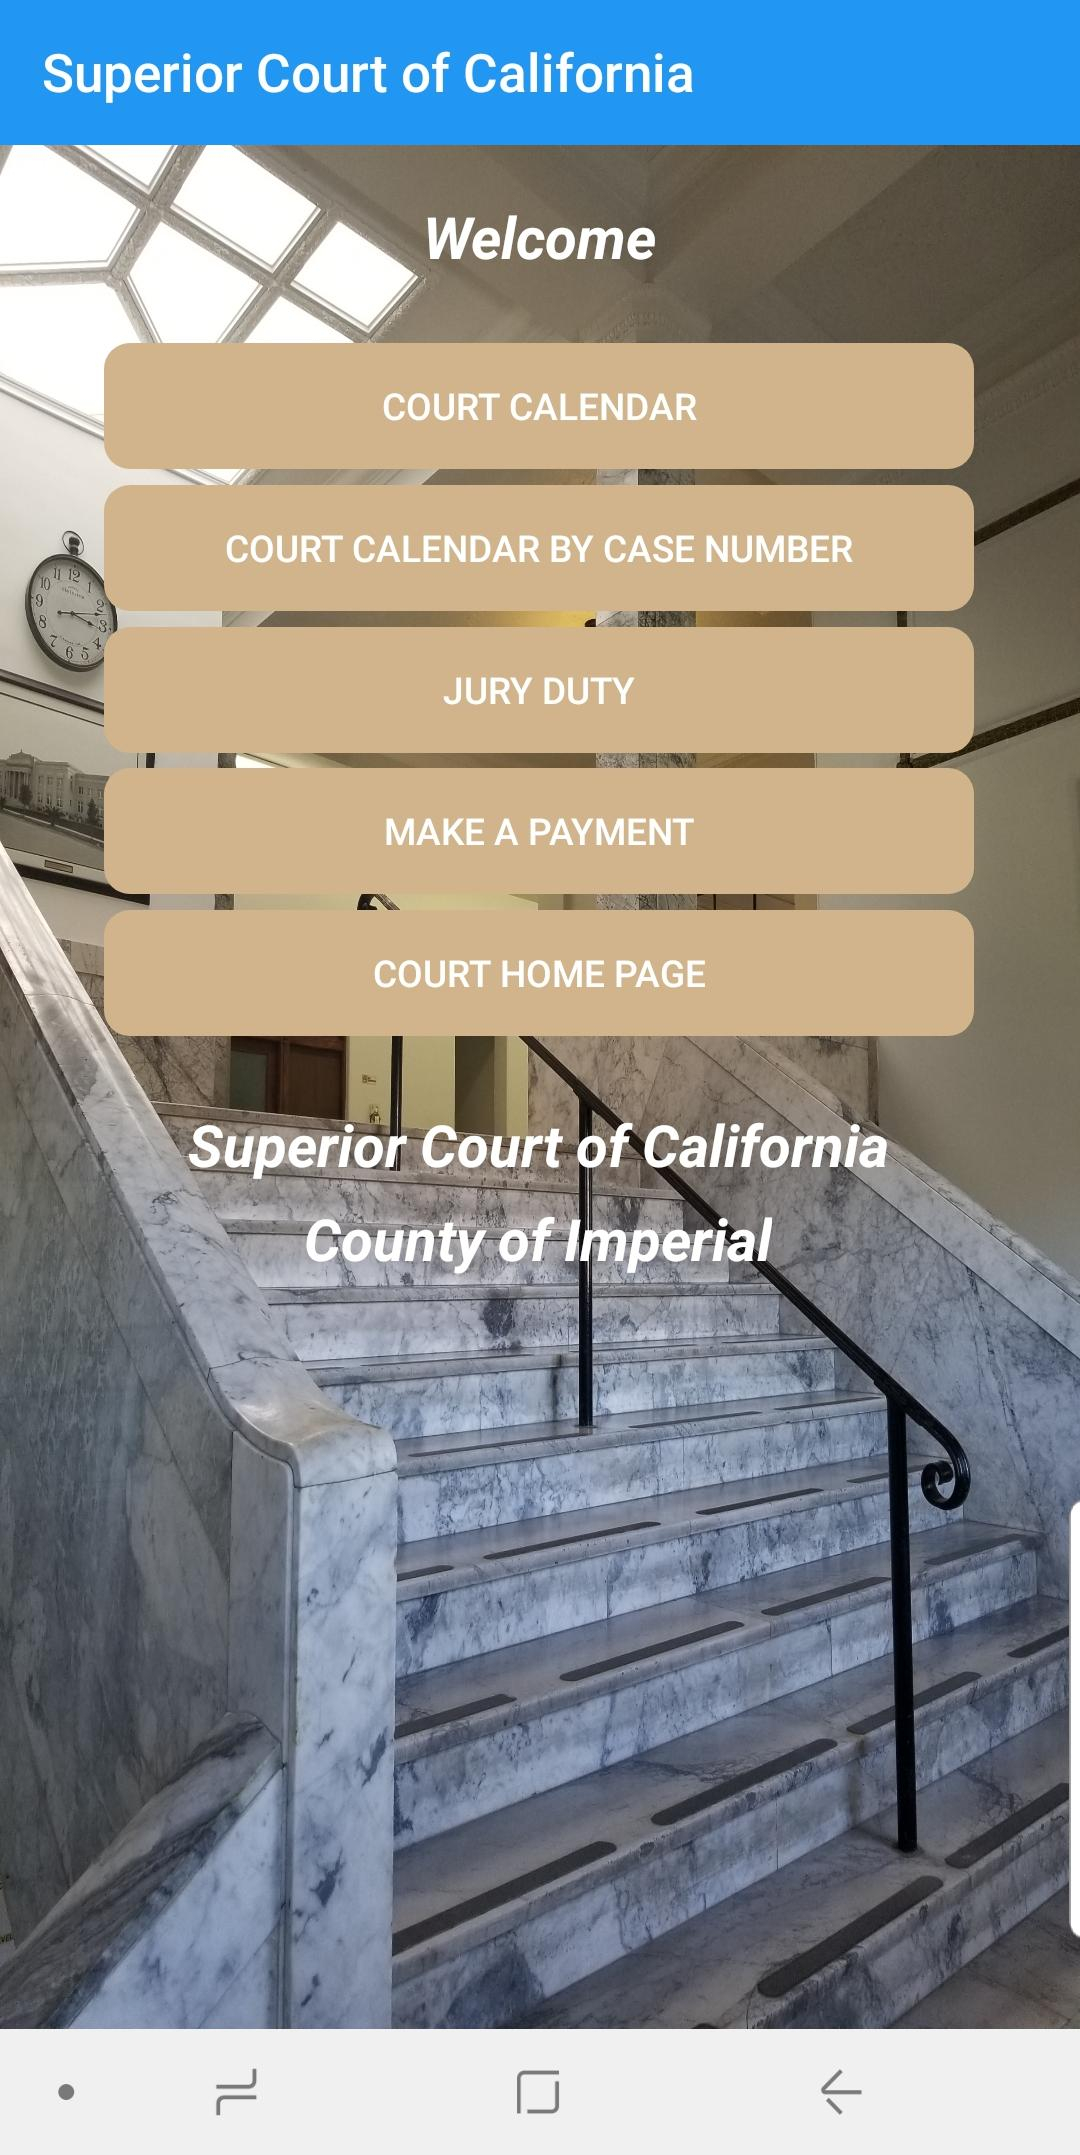 Superior Court Of Ca Imperial Для Андроид - Скачать Apk with Imperial County Superior Court Calendars